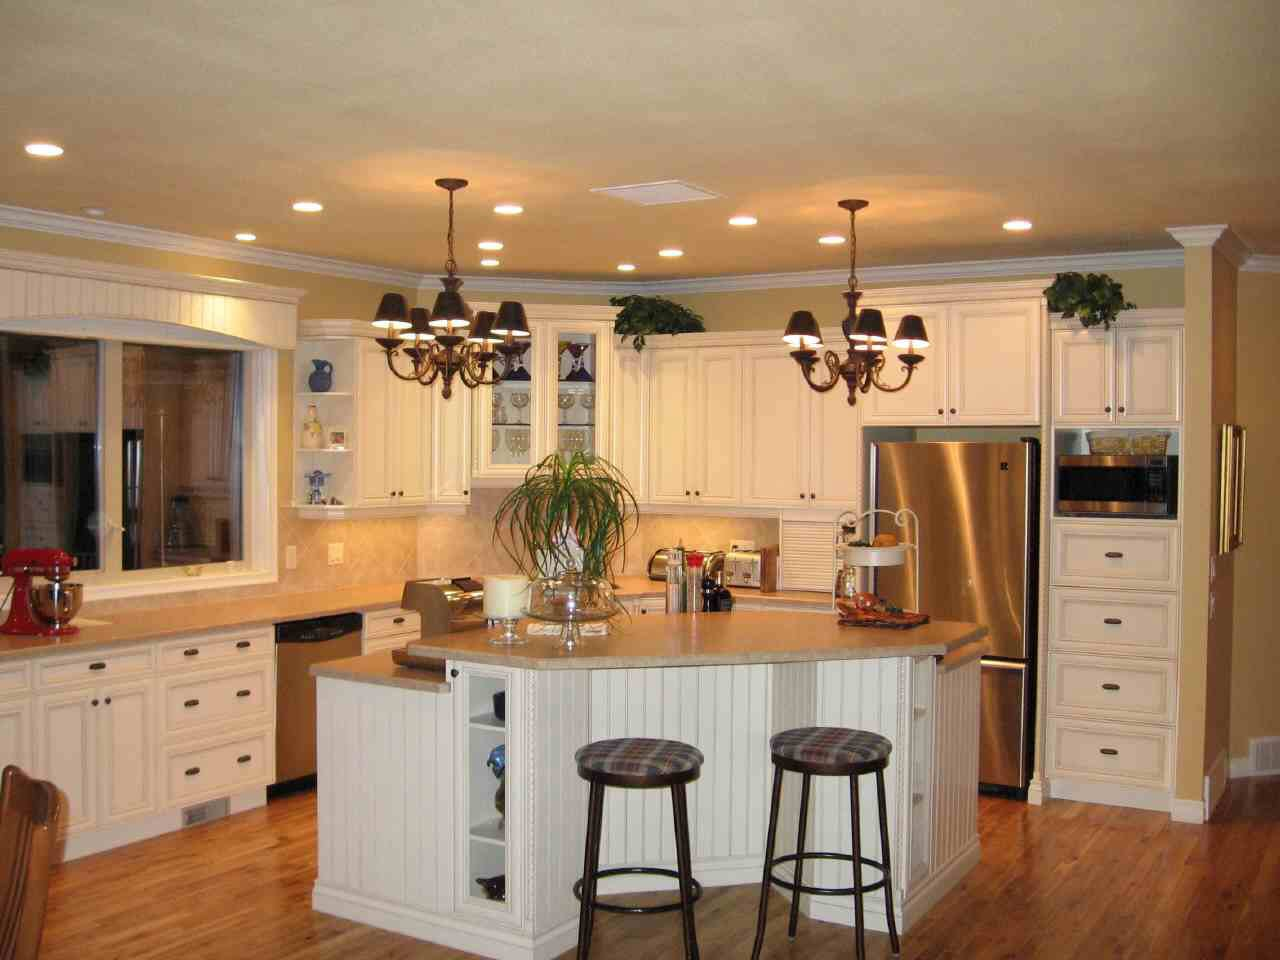 Top White Small Kitchen Design Ideas 1280 x 960 · 109 kB · jpeg